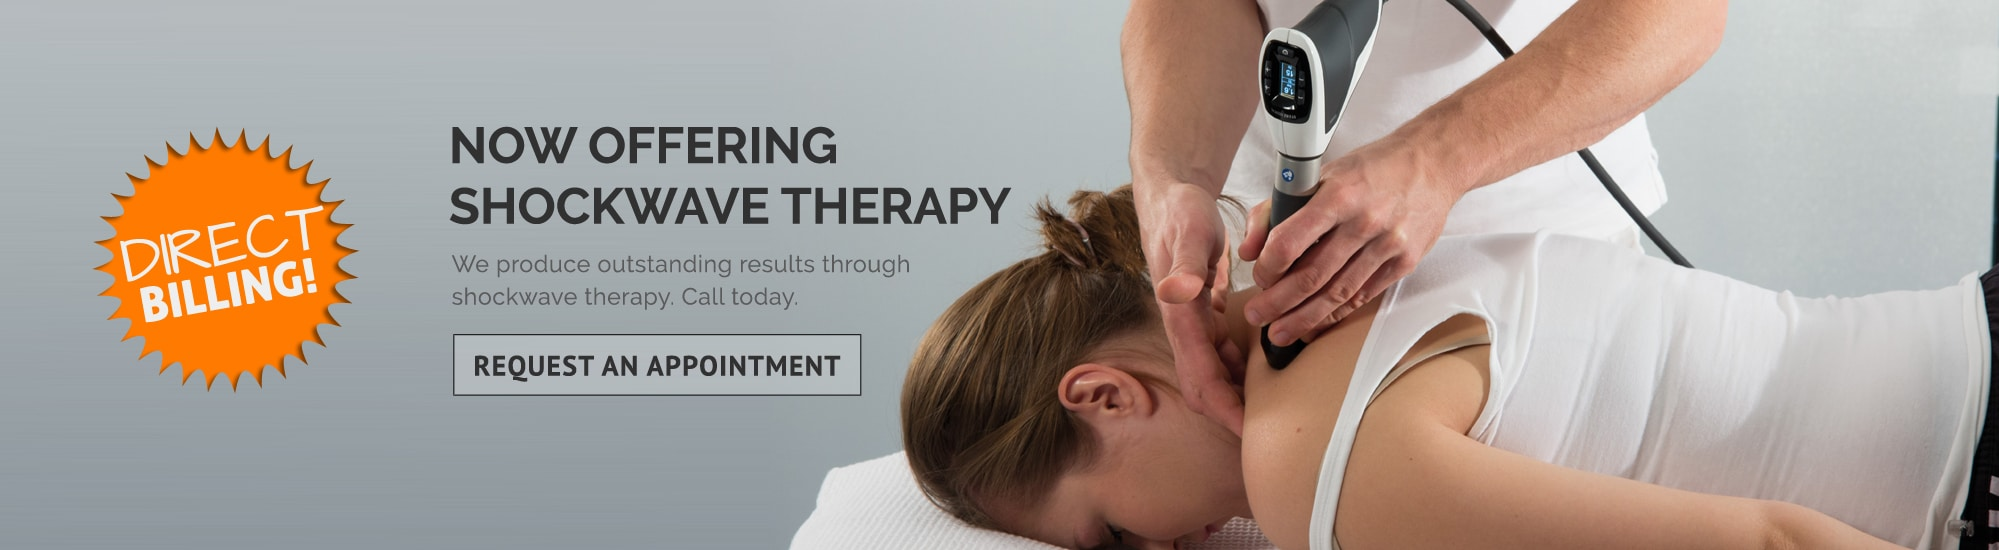 Shockwave Therapy in Red Deer AB